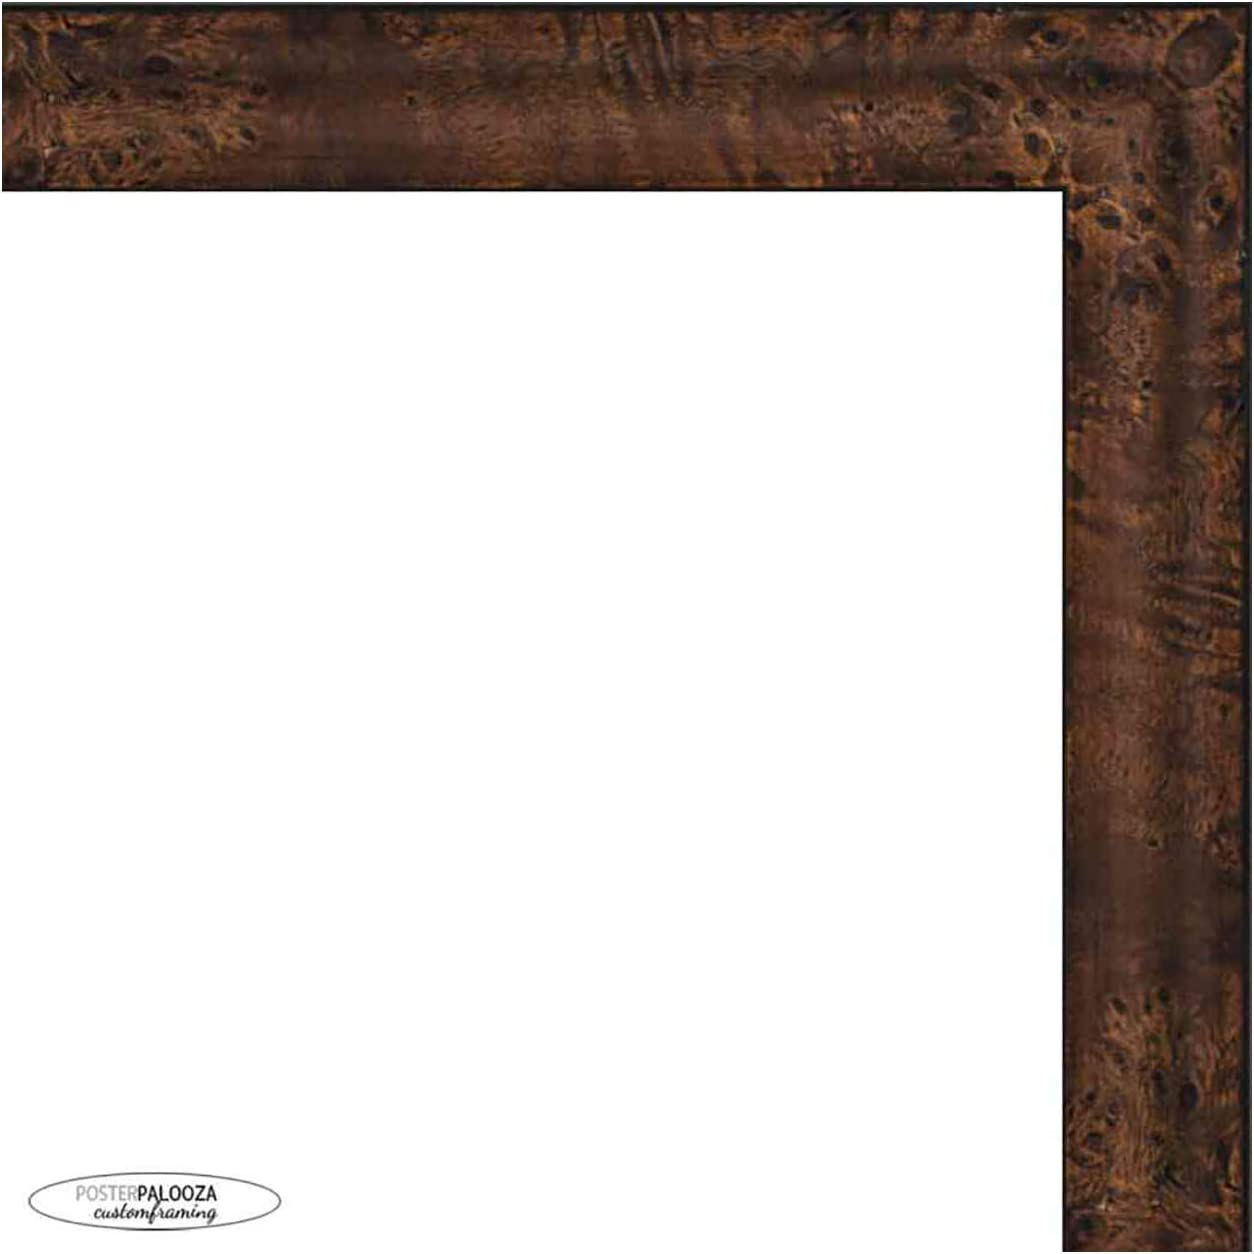 Poster Palooza 20x15 Traditional 2021 Walnut Max 54% OFF Picture Wood Complete Fr